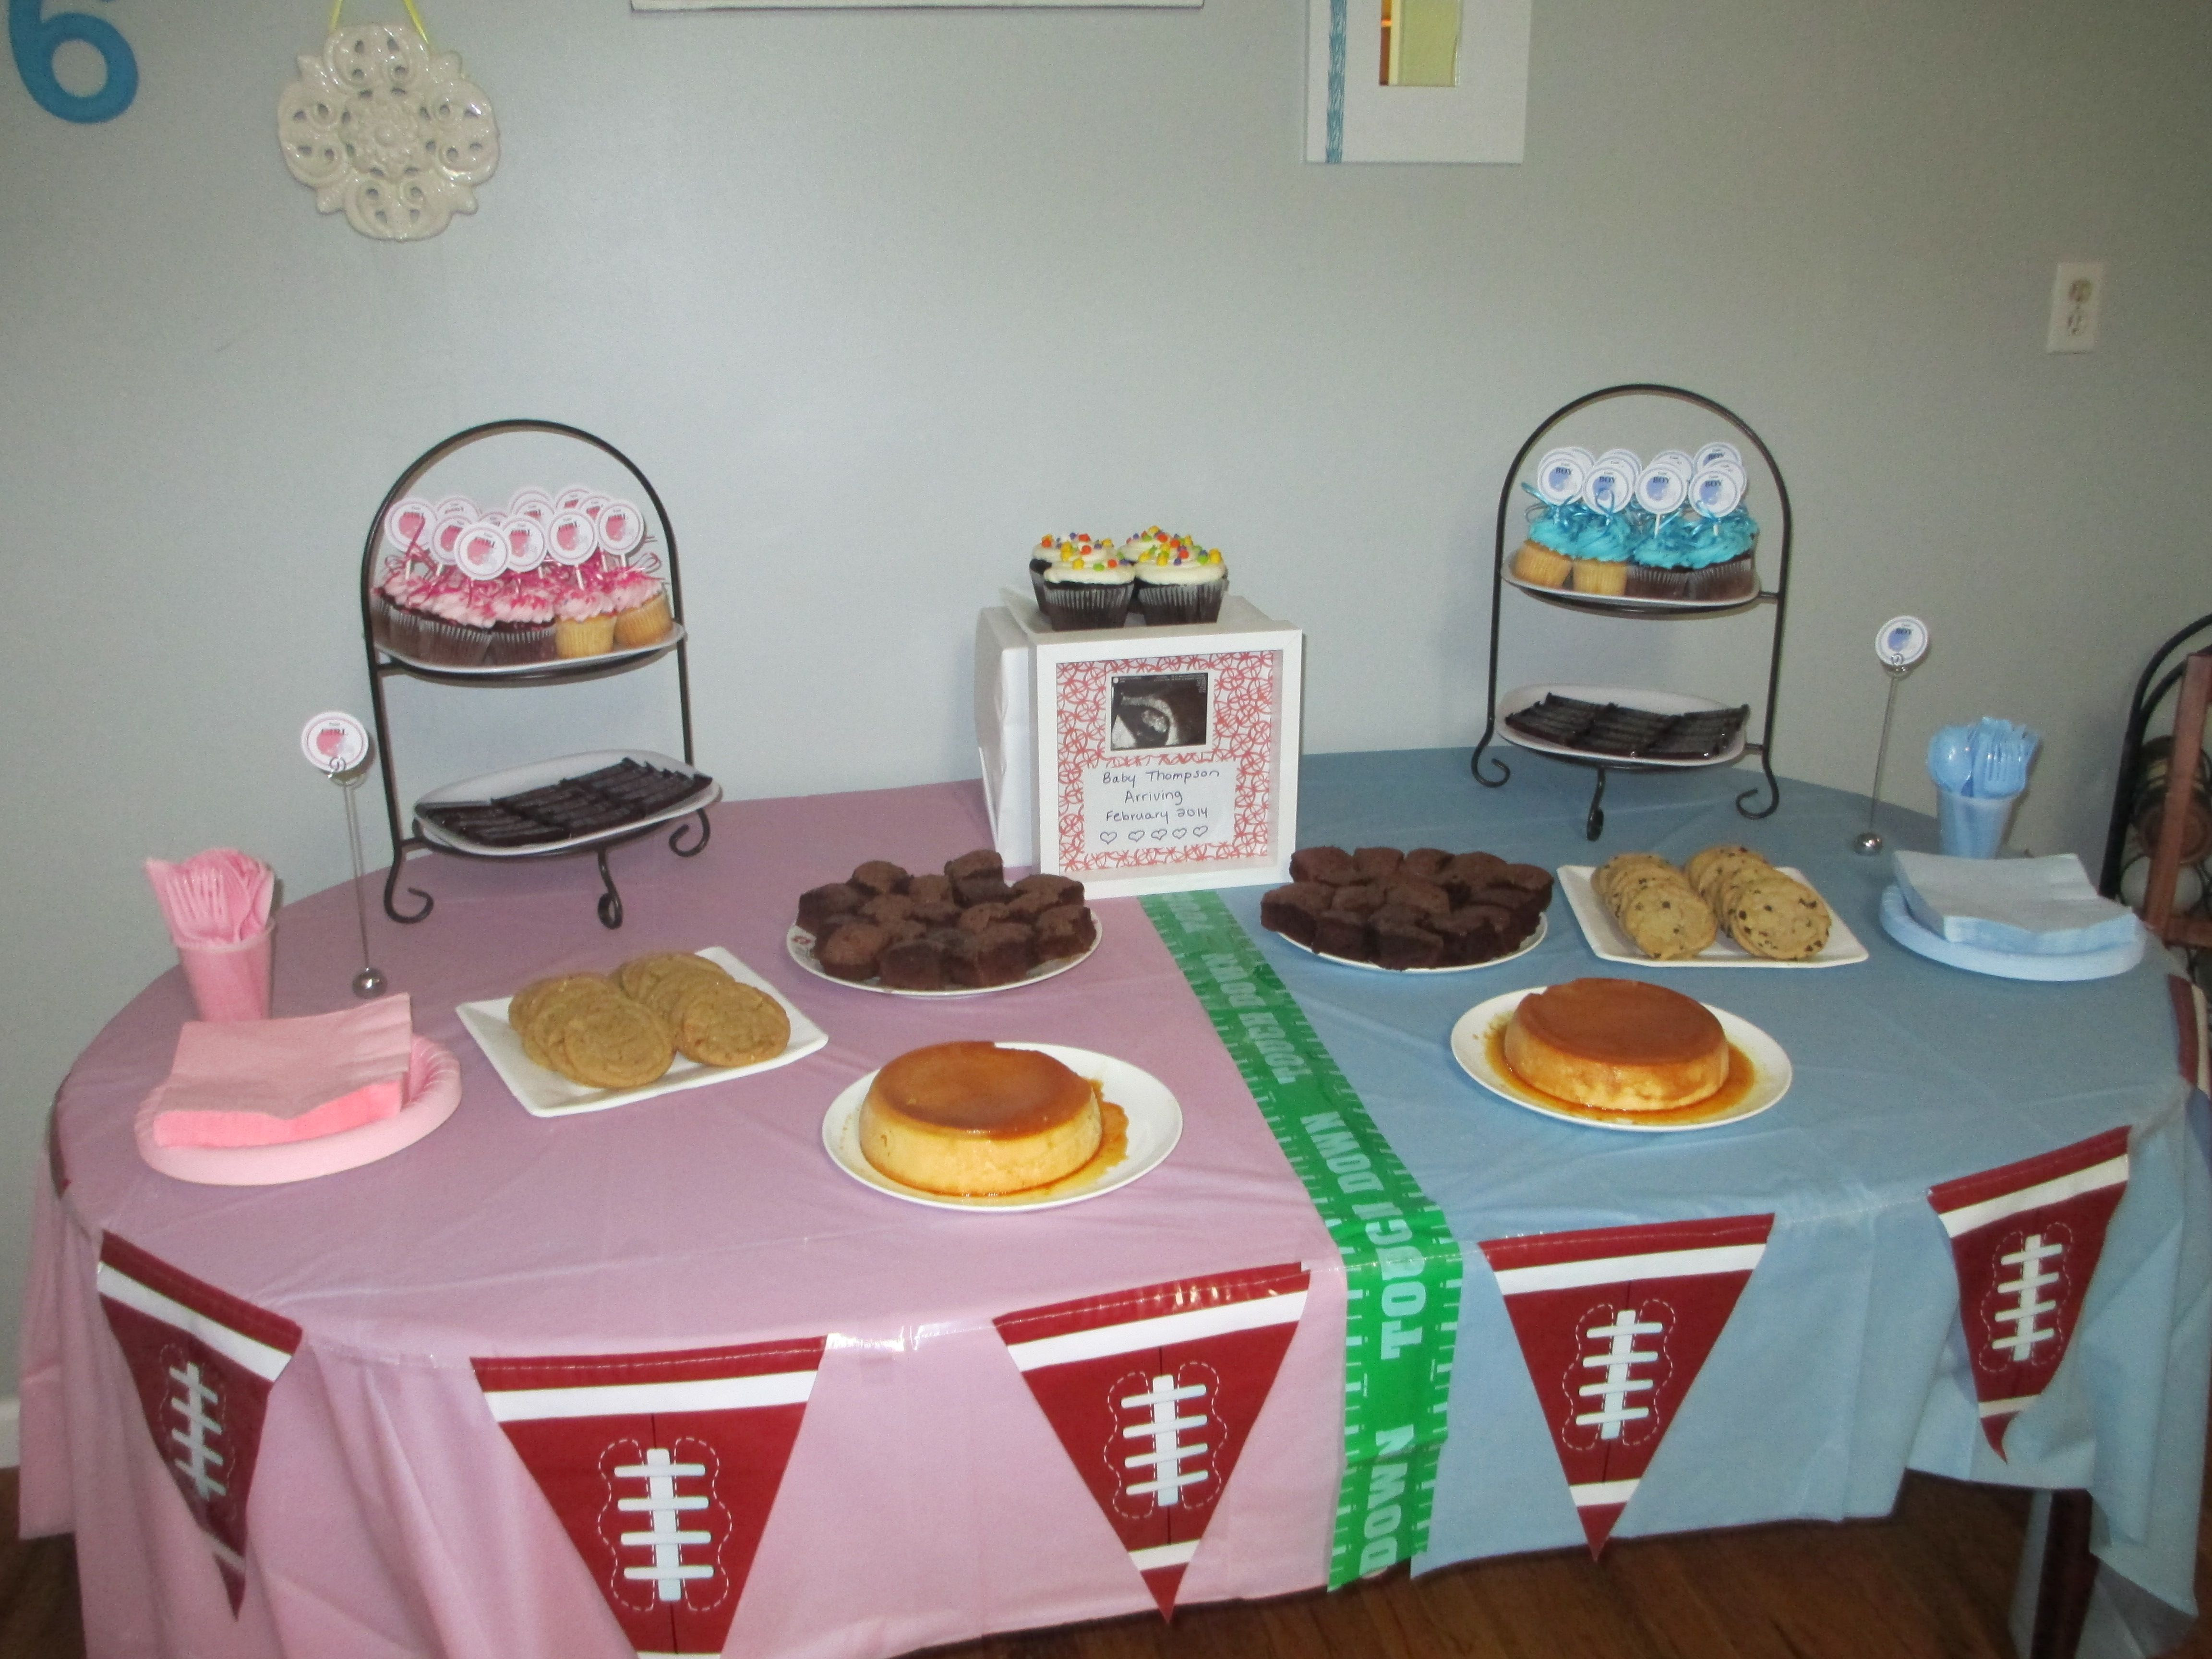 Football Gender Reveal Party Ideas  Football themed Gender Reveal Pink VS Blue